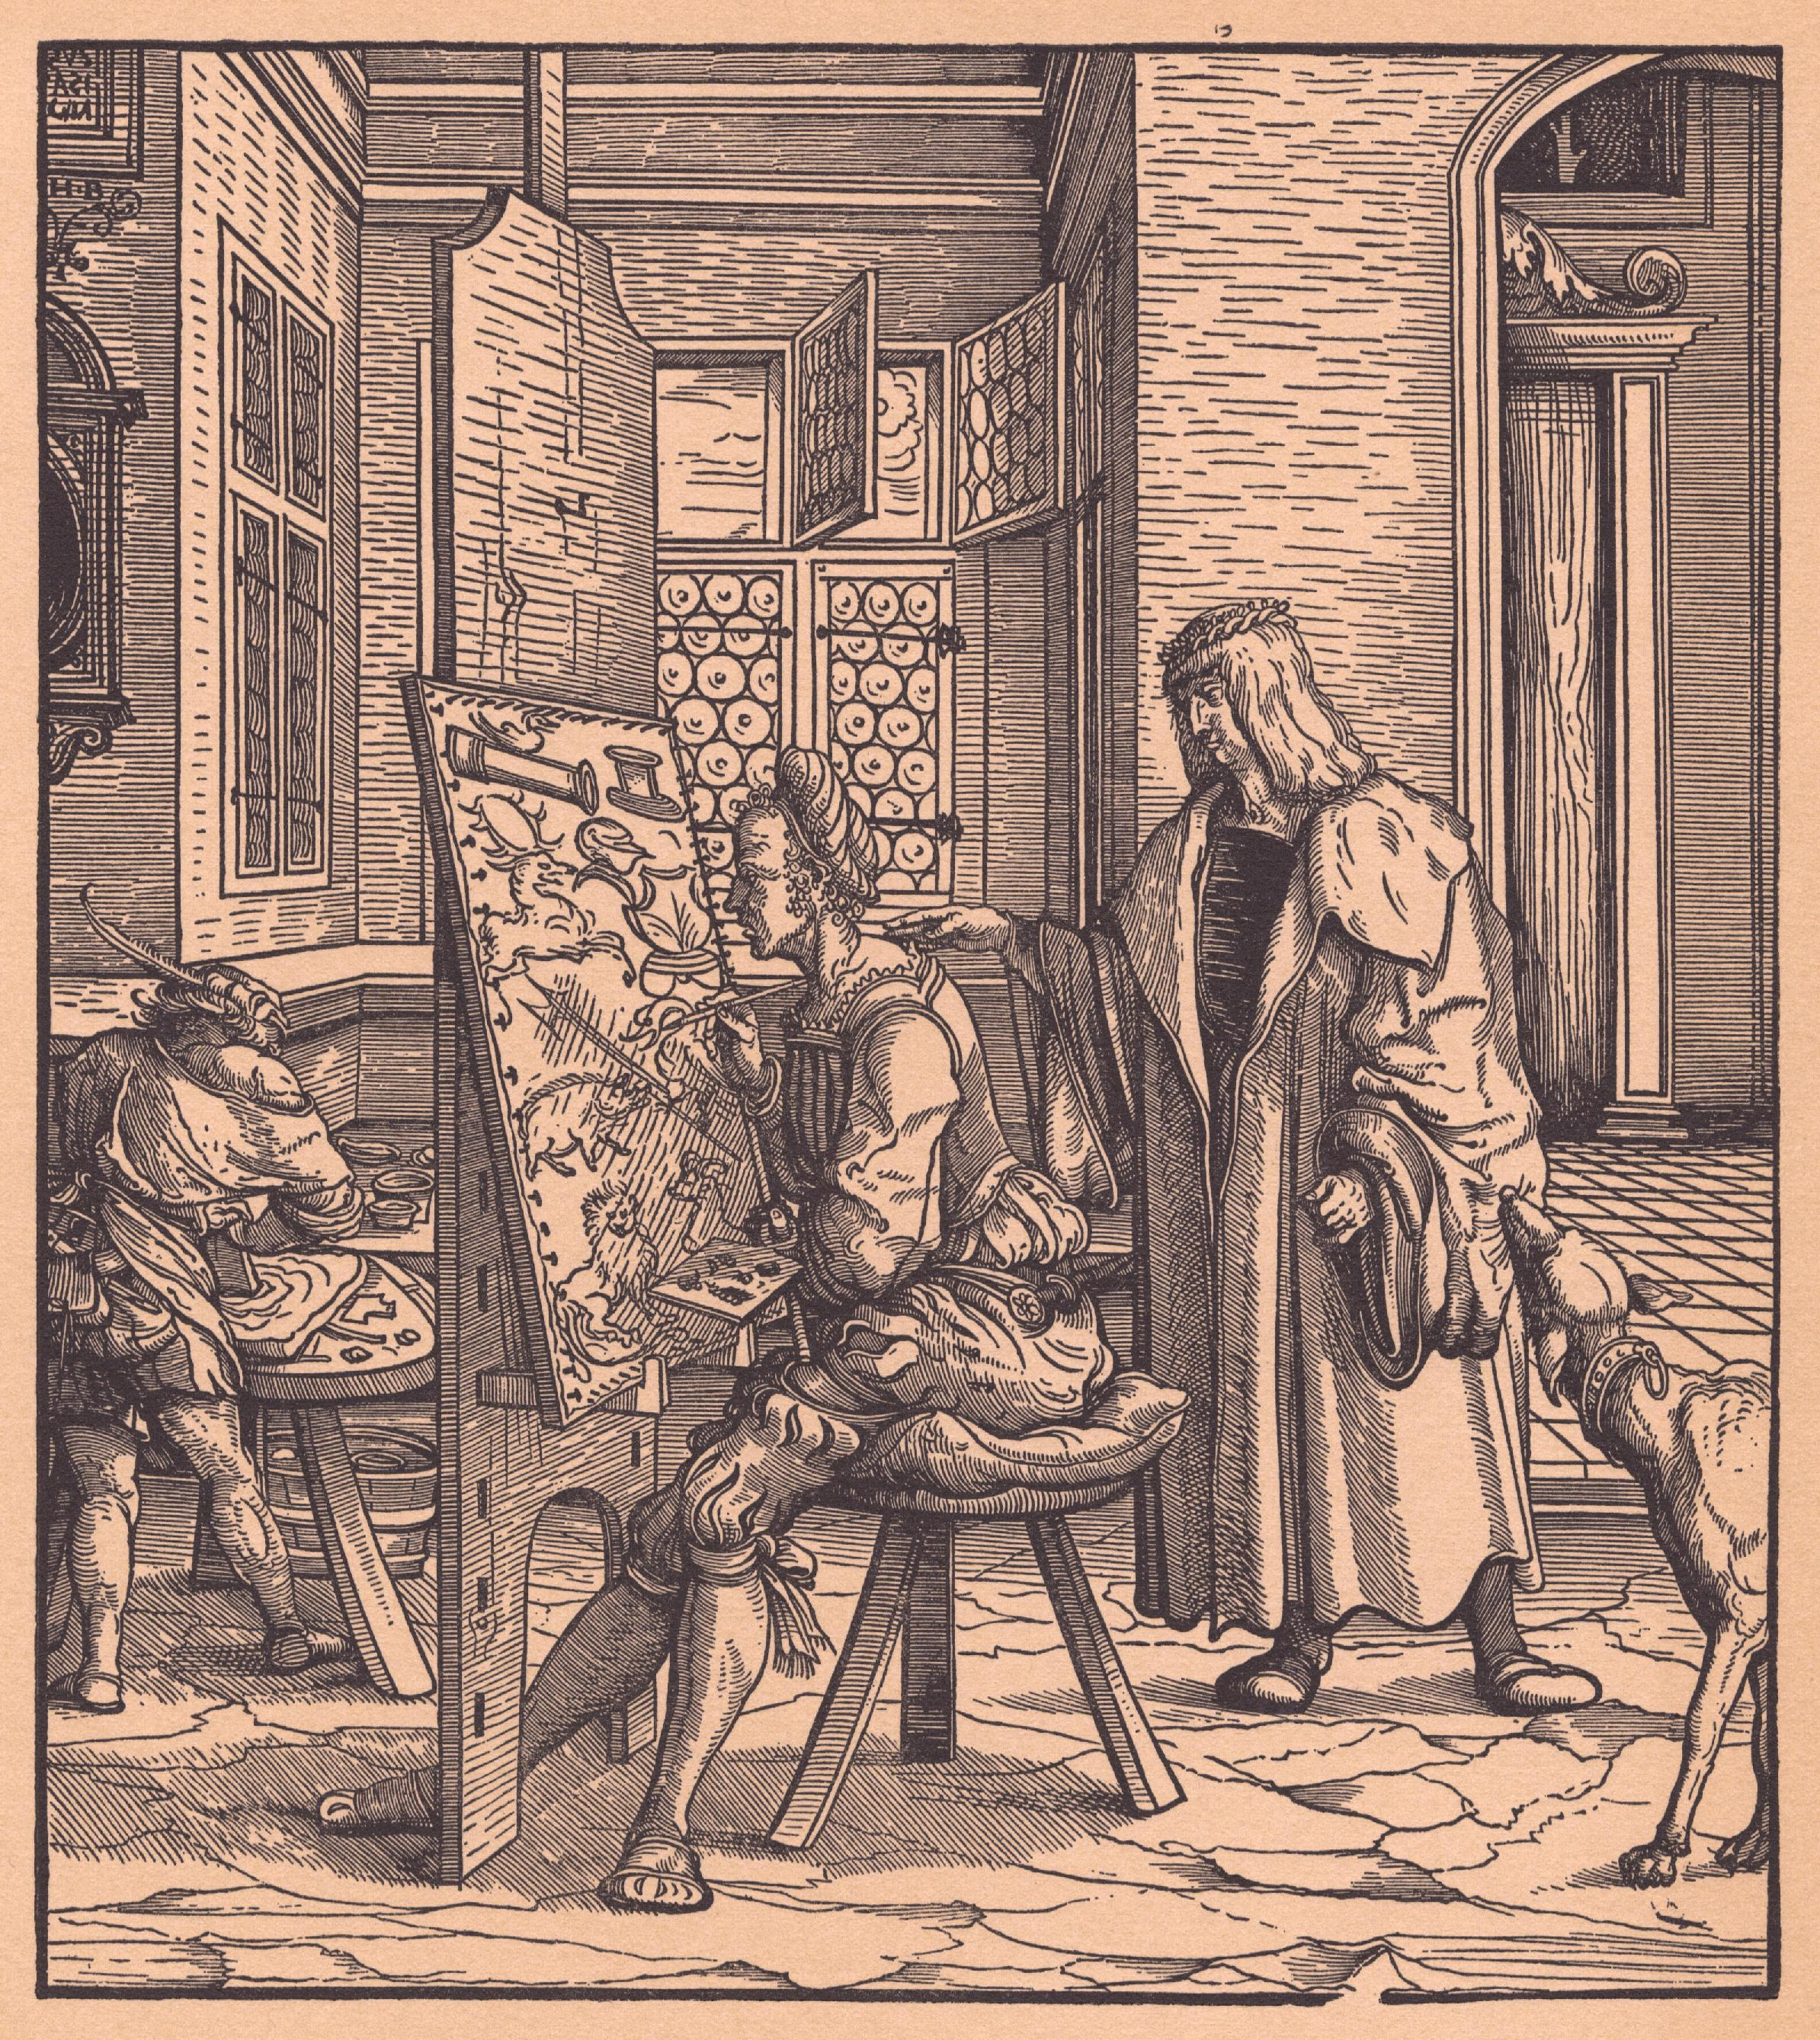 Printed woodcut, illustration circa 1514 to 1516, by artist Hans Burgkmair the Elder. Illustration from an autobiography by Maximilian I titled Der Weißkunig. From the Cohn Bequest.